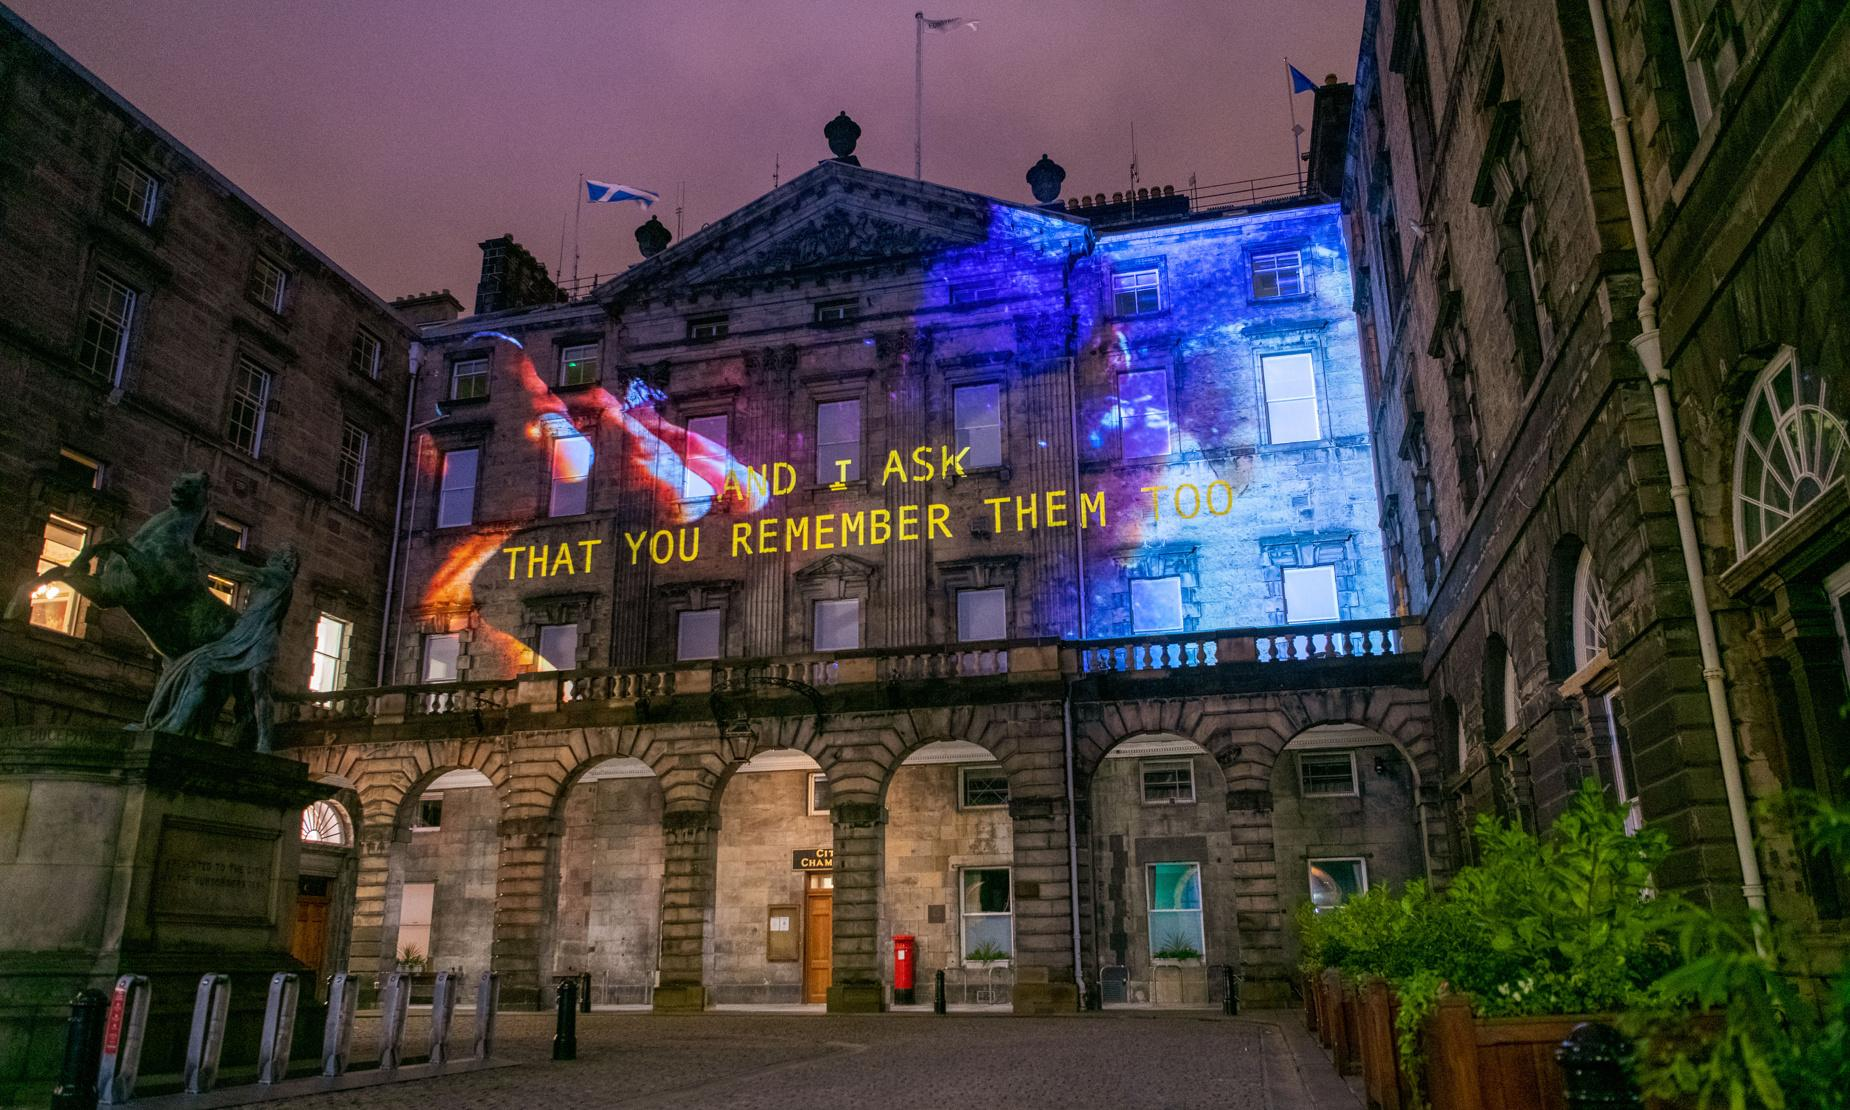 Message from the Skies review – Edinburgh's heritage illuminated